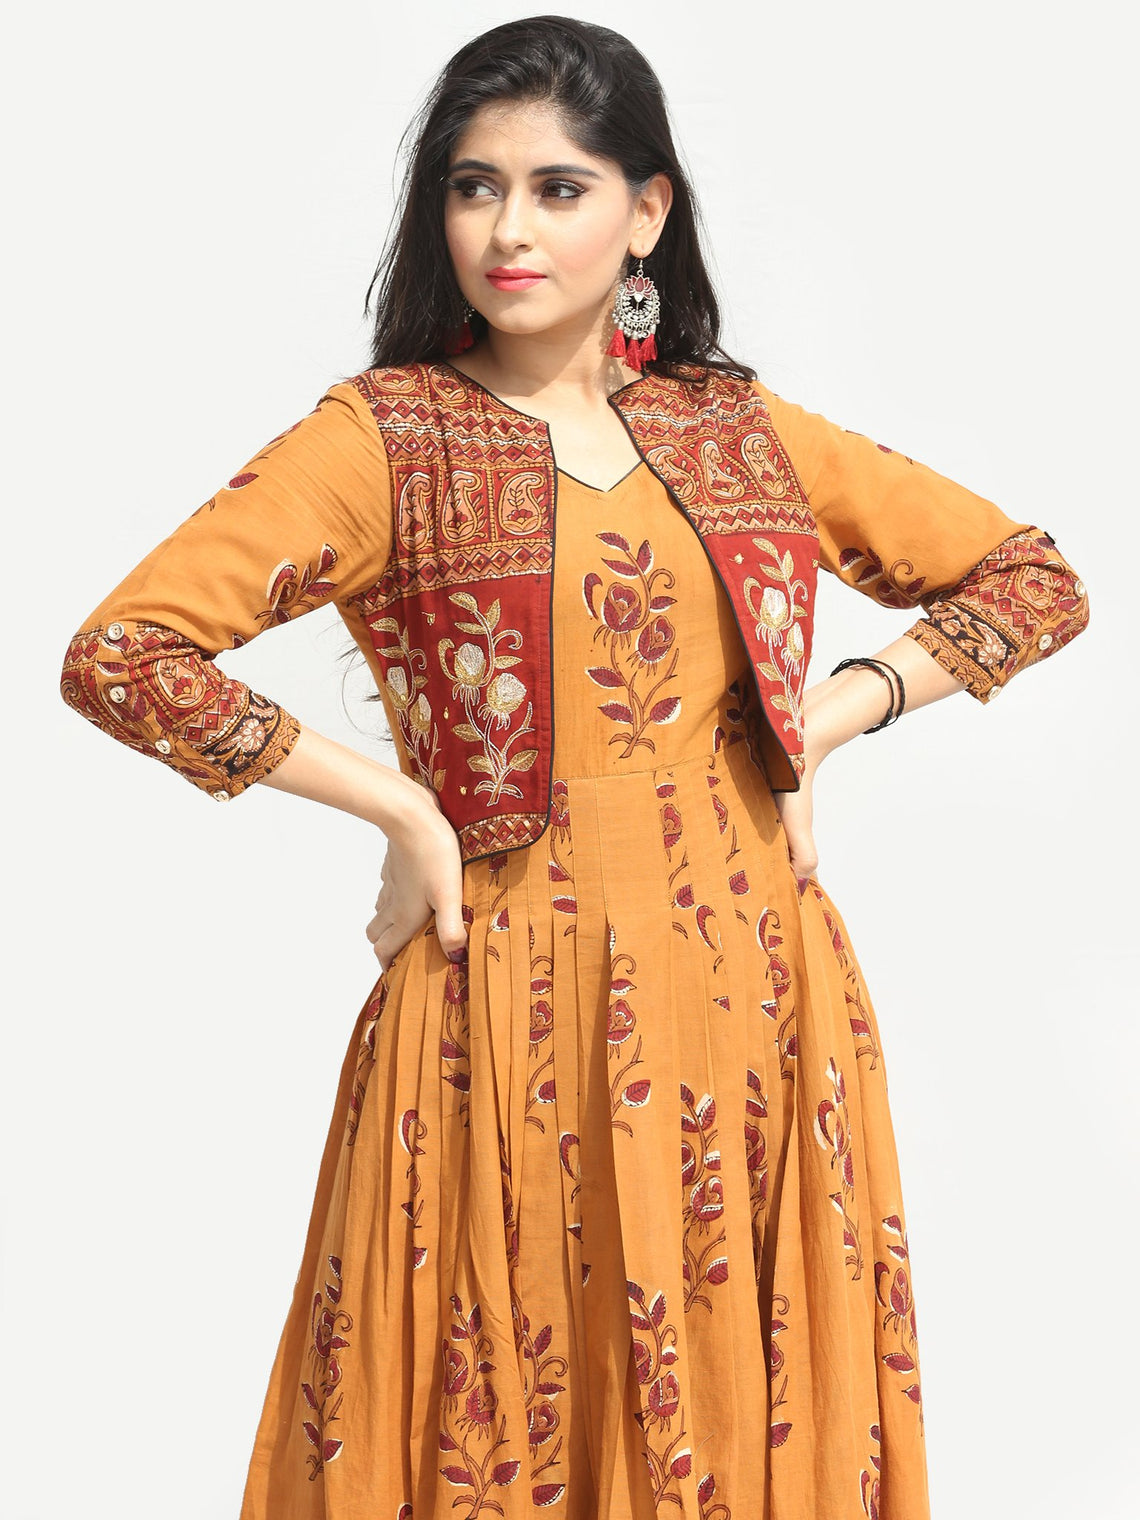 Roheen - Hand Block Printed Long Cotton Box Pleated Embroidered Jacket Dress - DS98F004